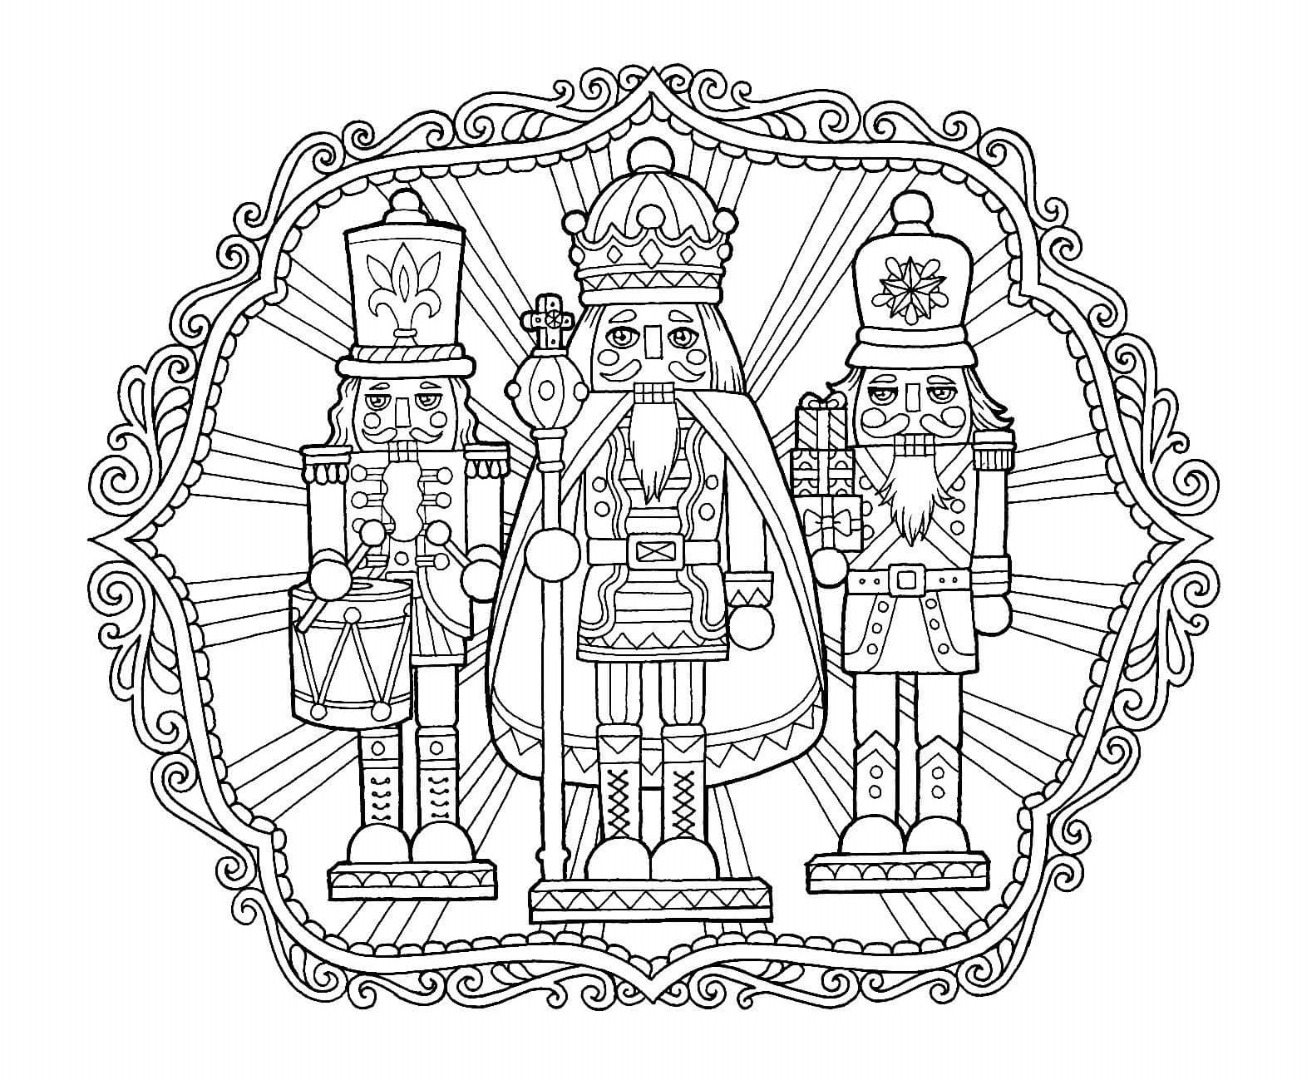 christmas coloring pages for adults free 5 absolutely free beautiful christmas colouring pages adults free coloring christmas pages for